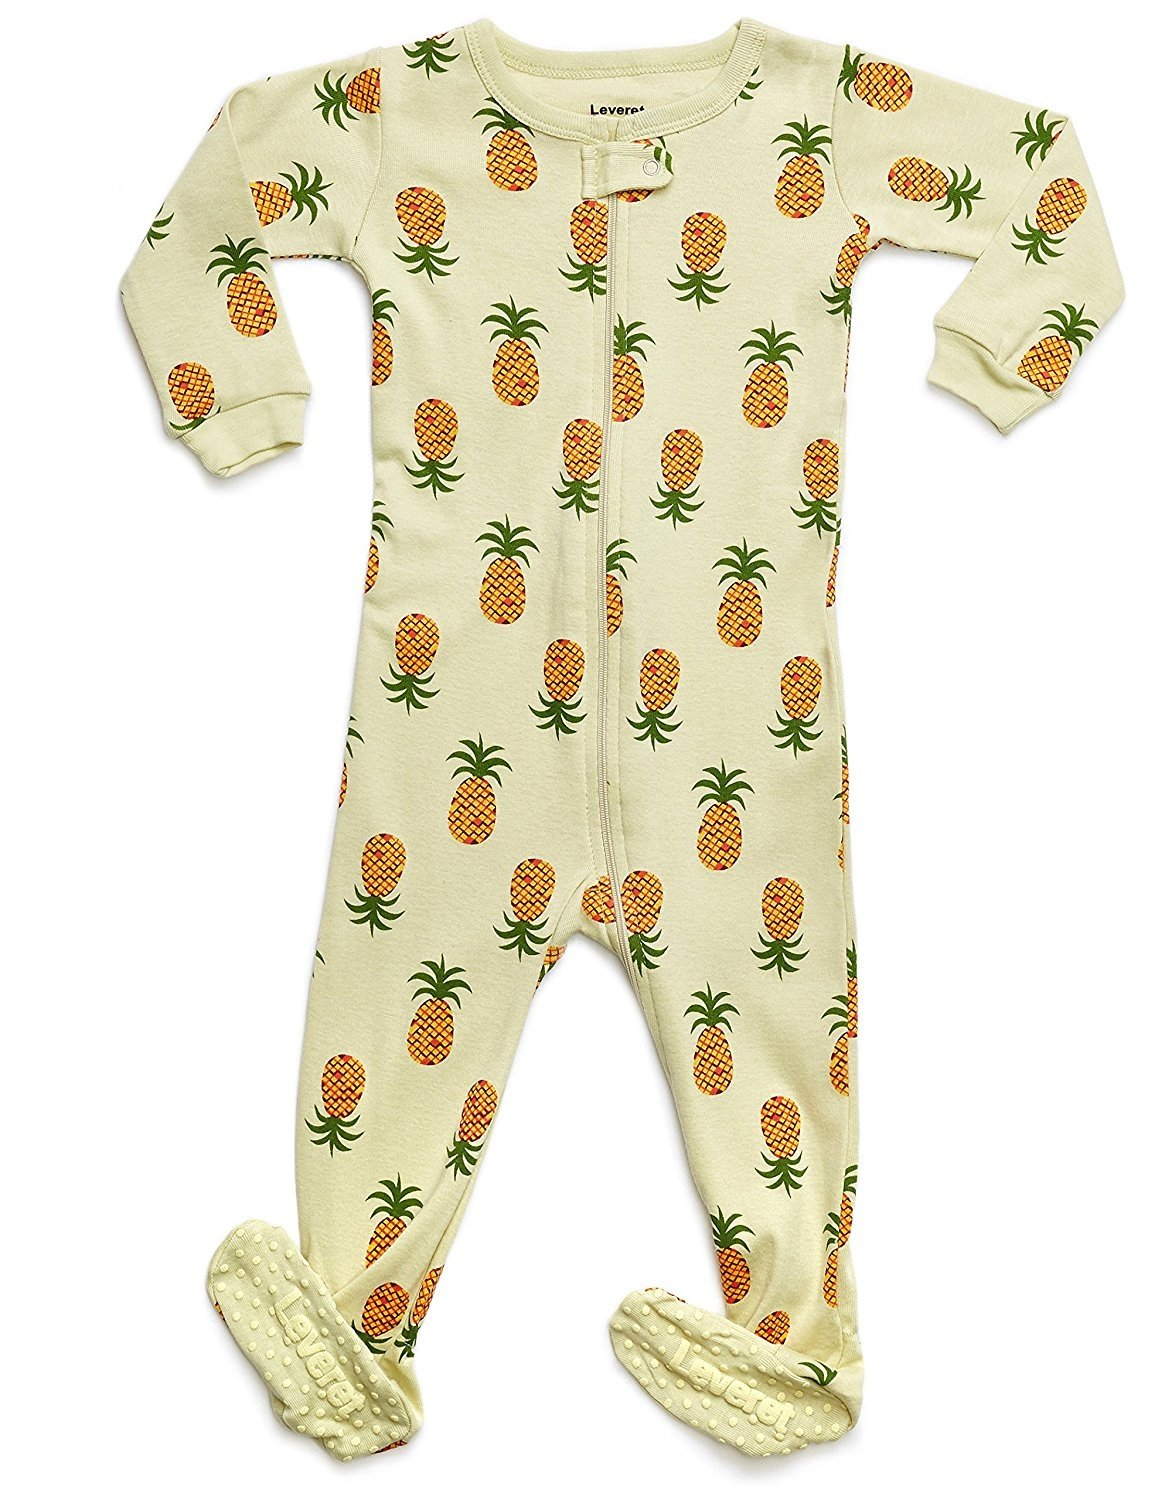 Leveret Organic Cotton Pineapple Footed Pajama Sleeper 18-24 Months